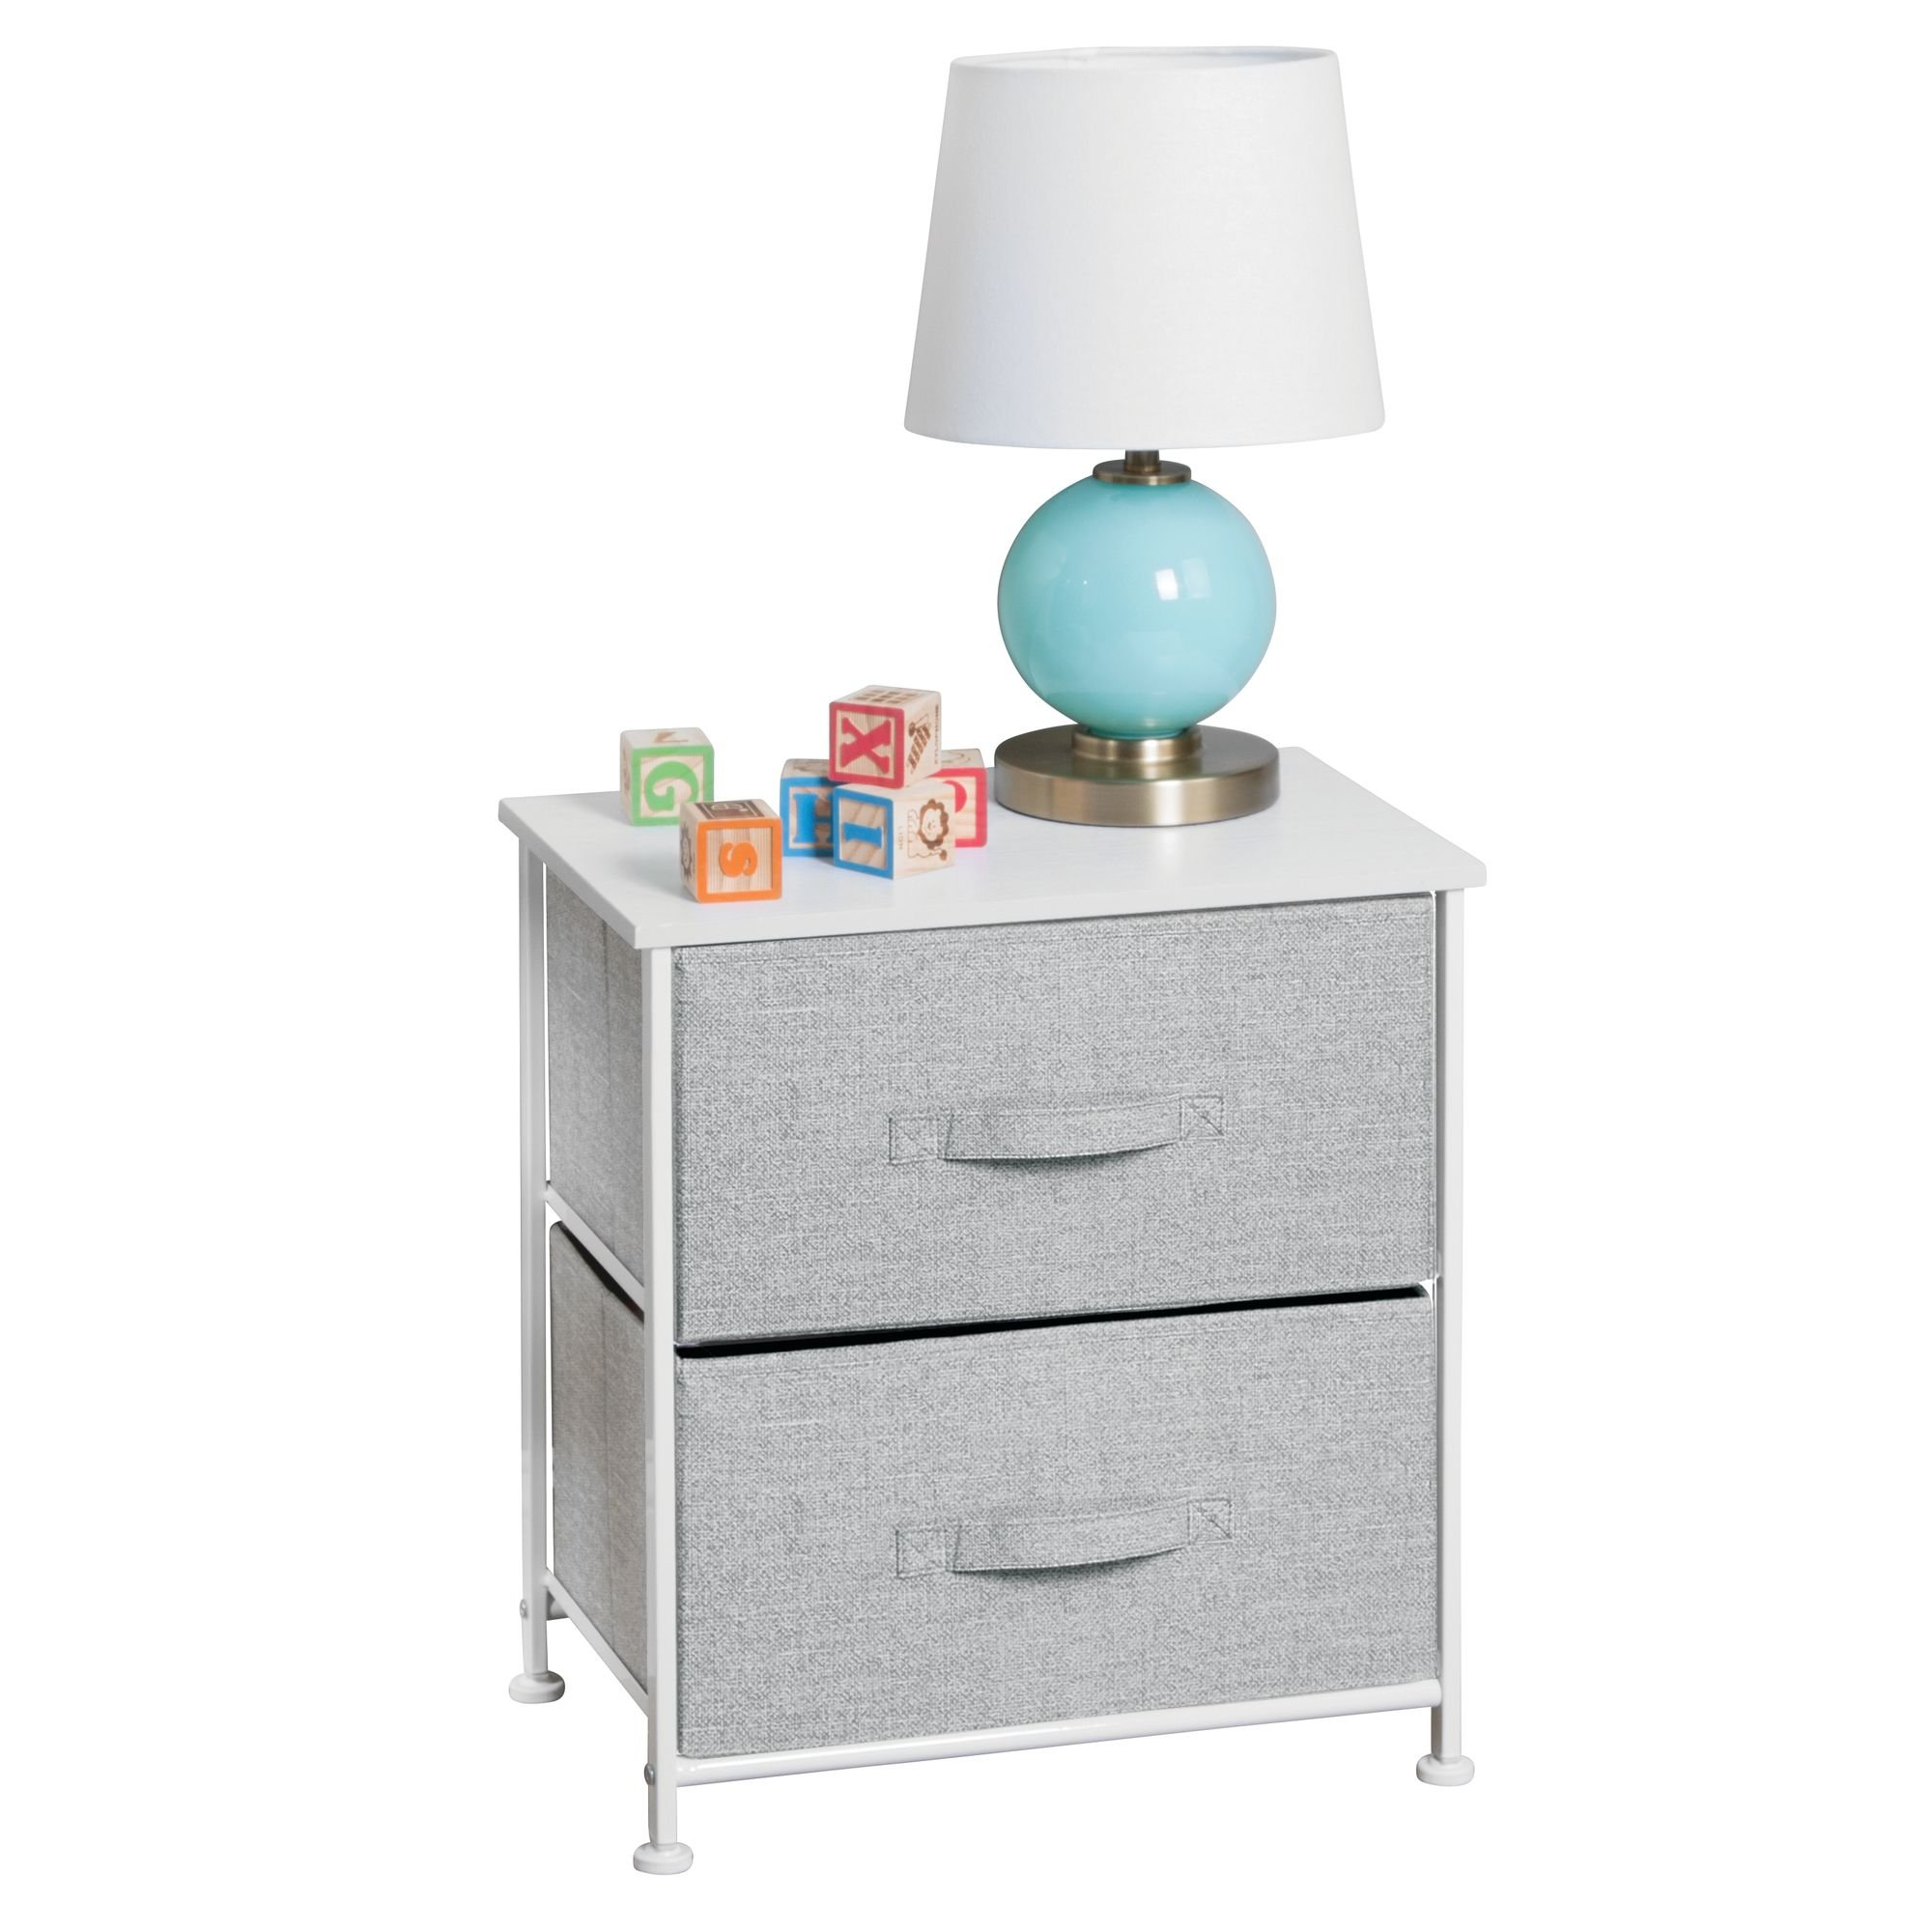 mDesign Fabric Baby 2-Drawer Dresser and Storage Organizer Unit for Nursery, Bedroom, Play Room - Gray